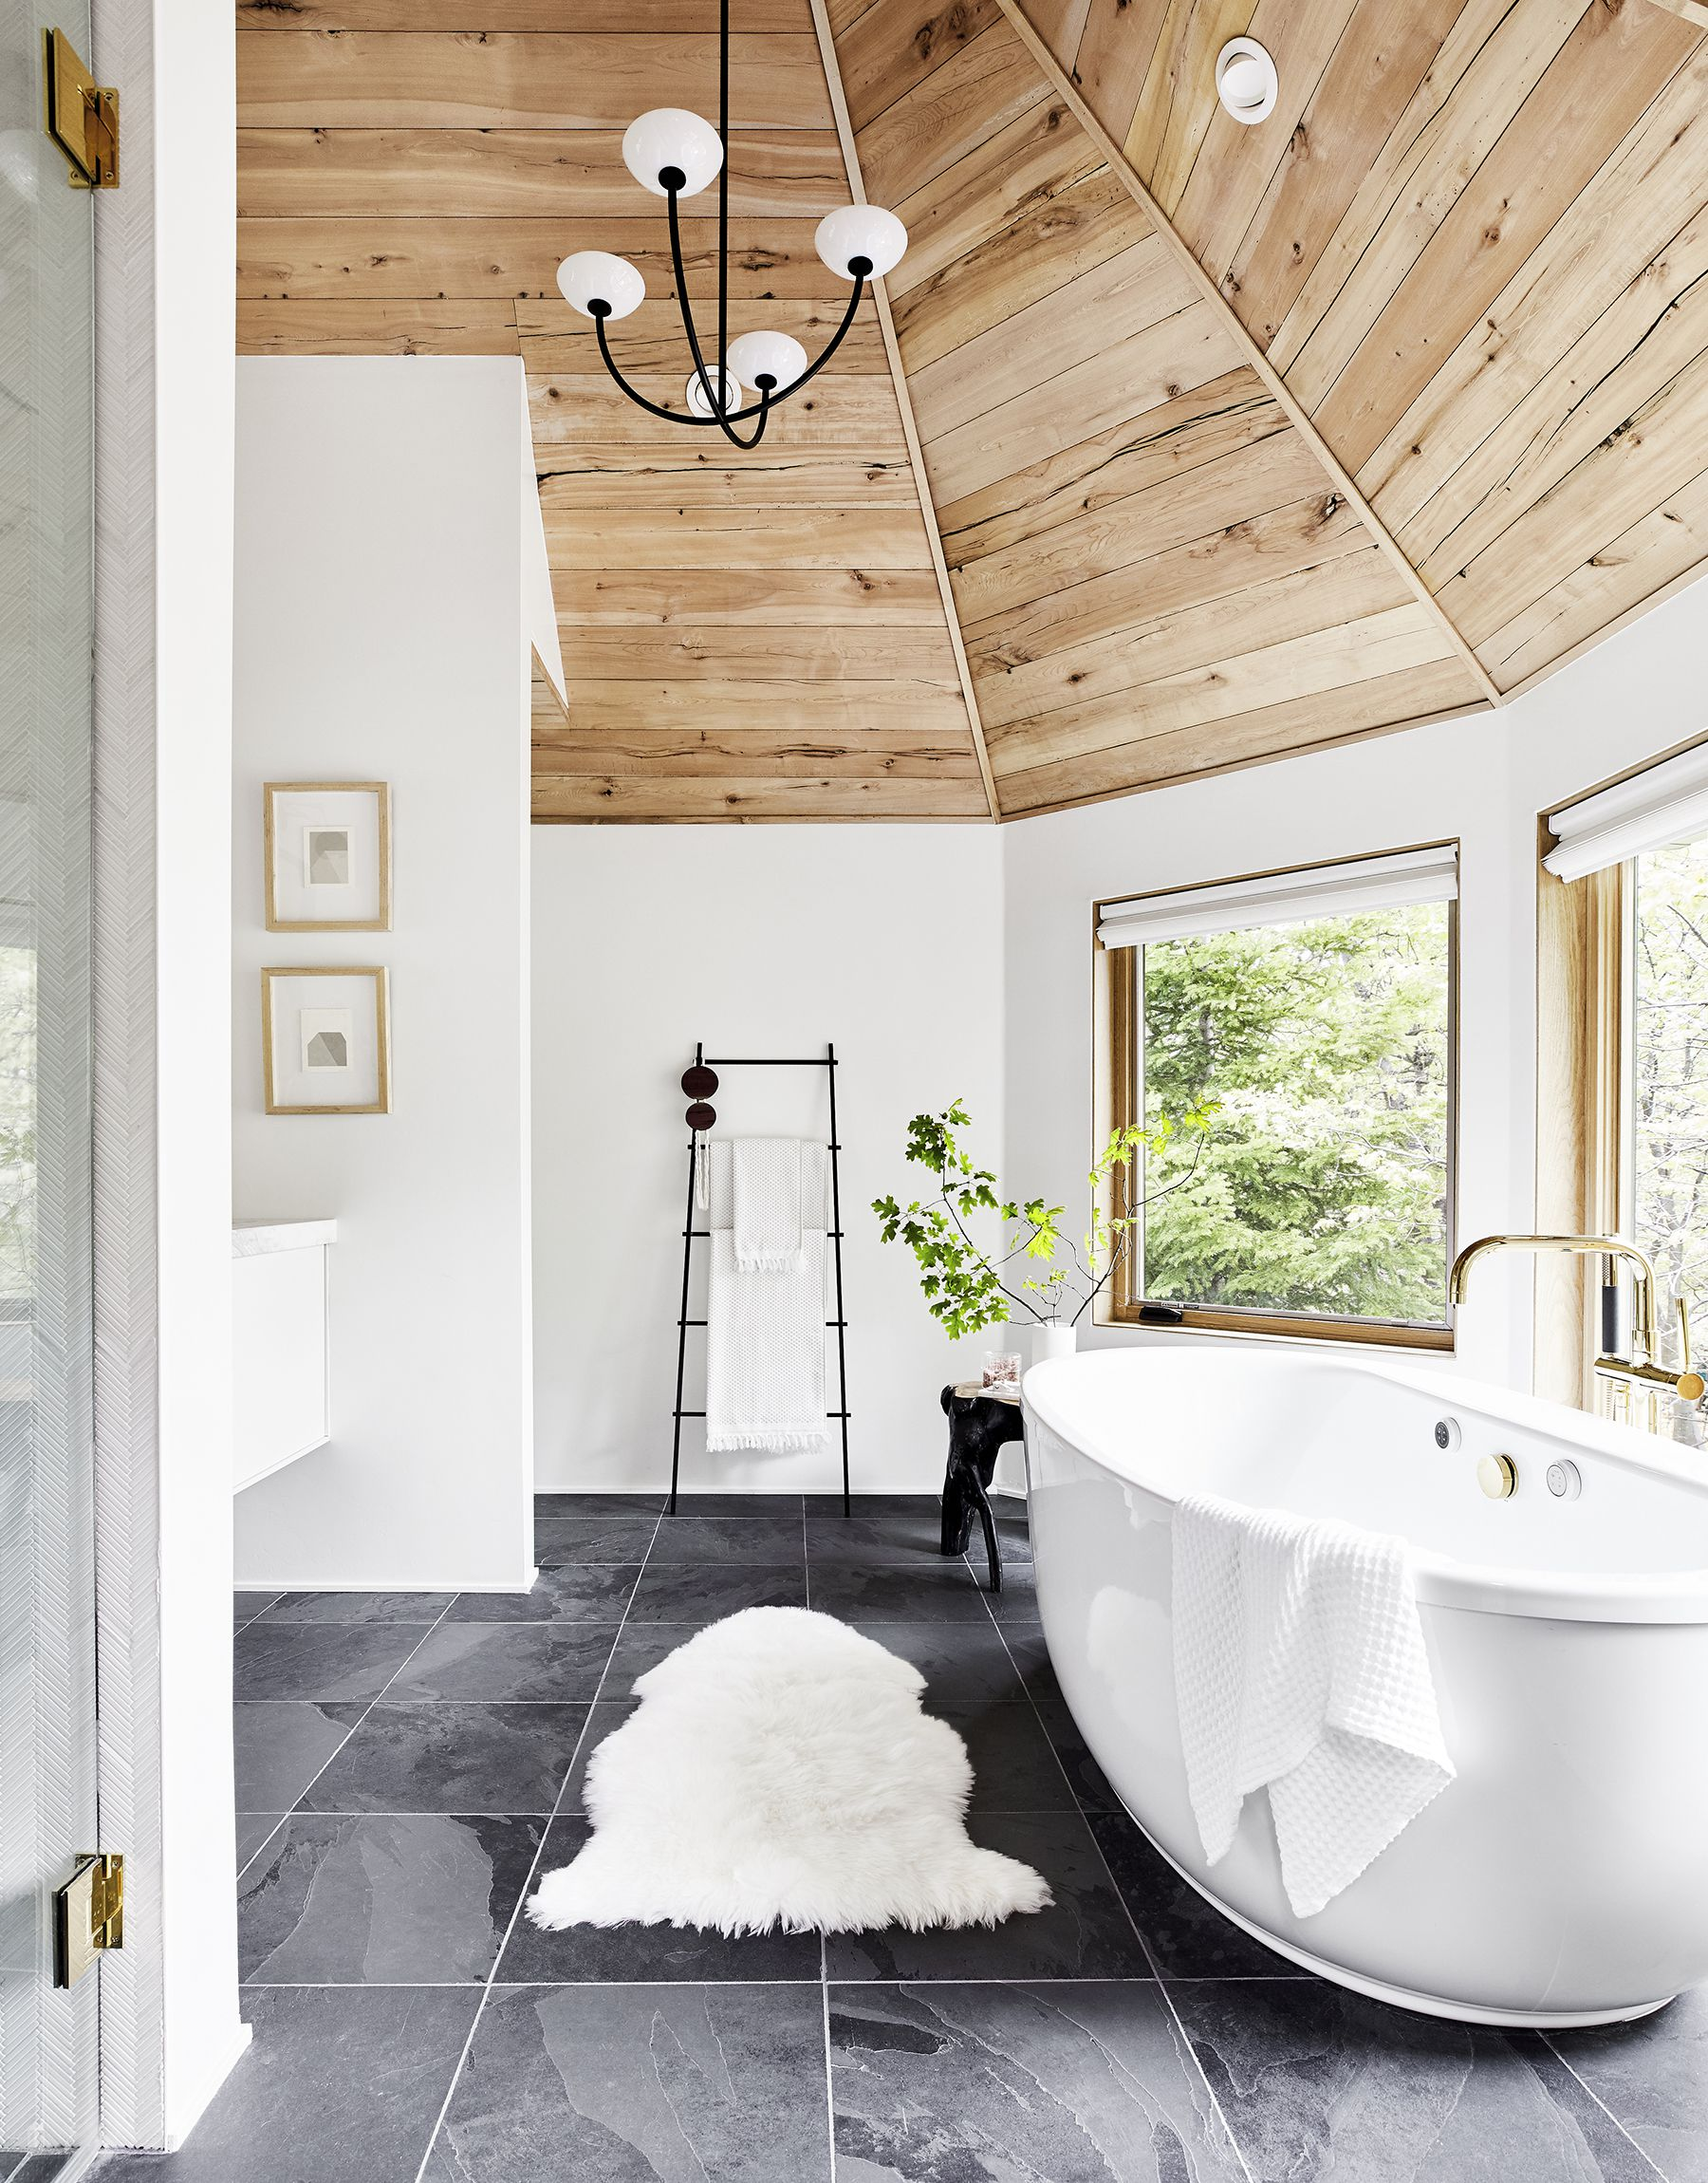 21 of the Most Beautiful Bathrooms We Spotted on Instagram